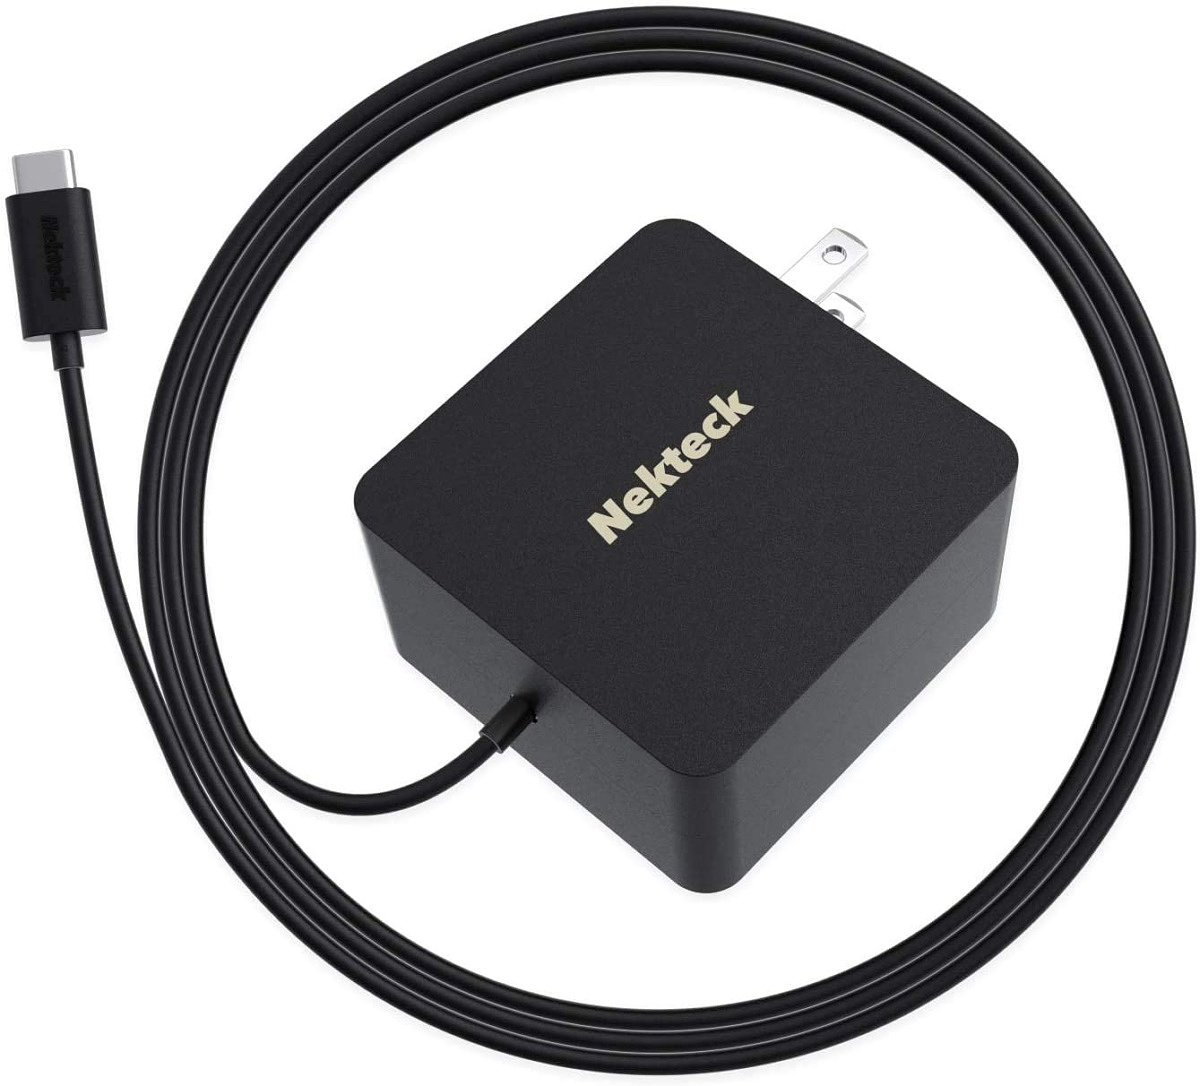 NekTeck 45W USB C PD charger